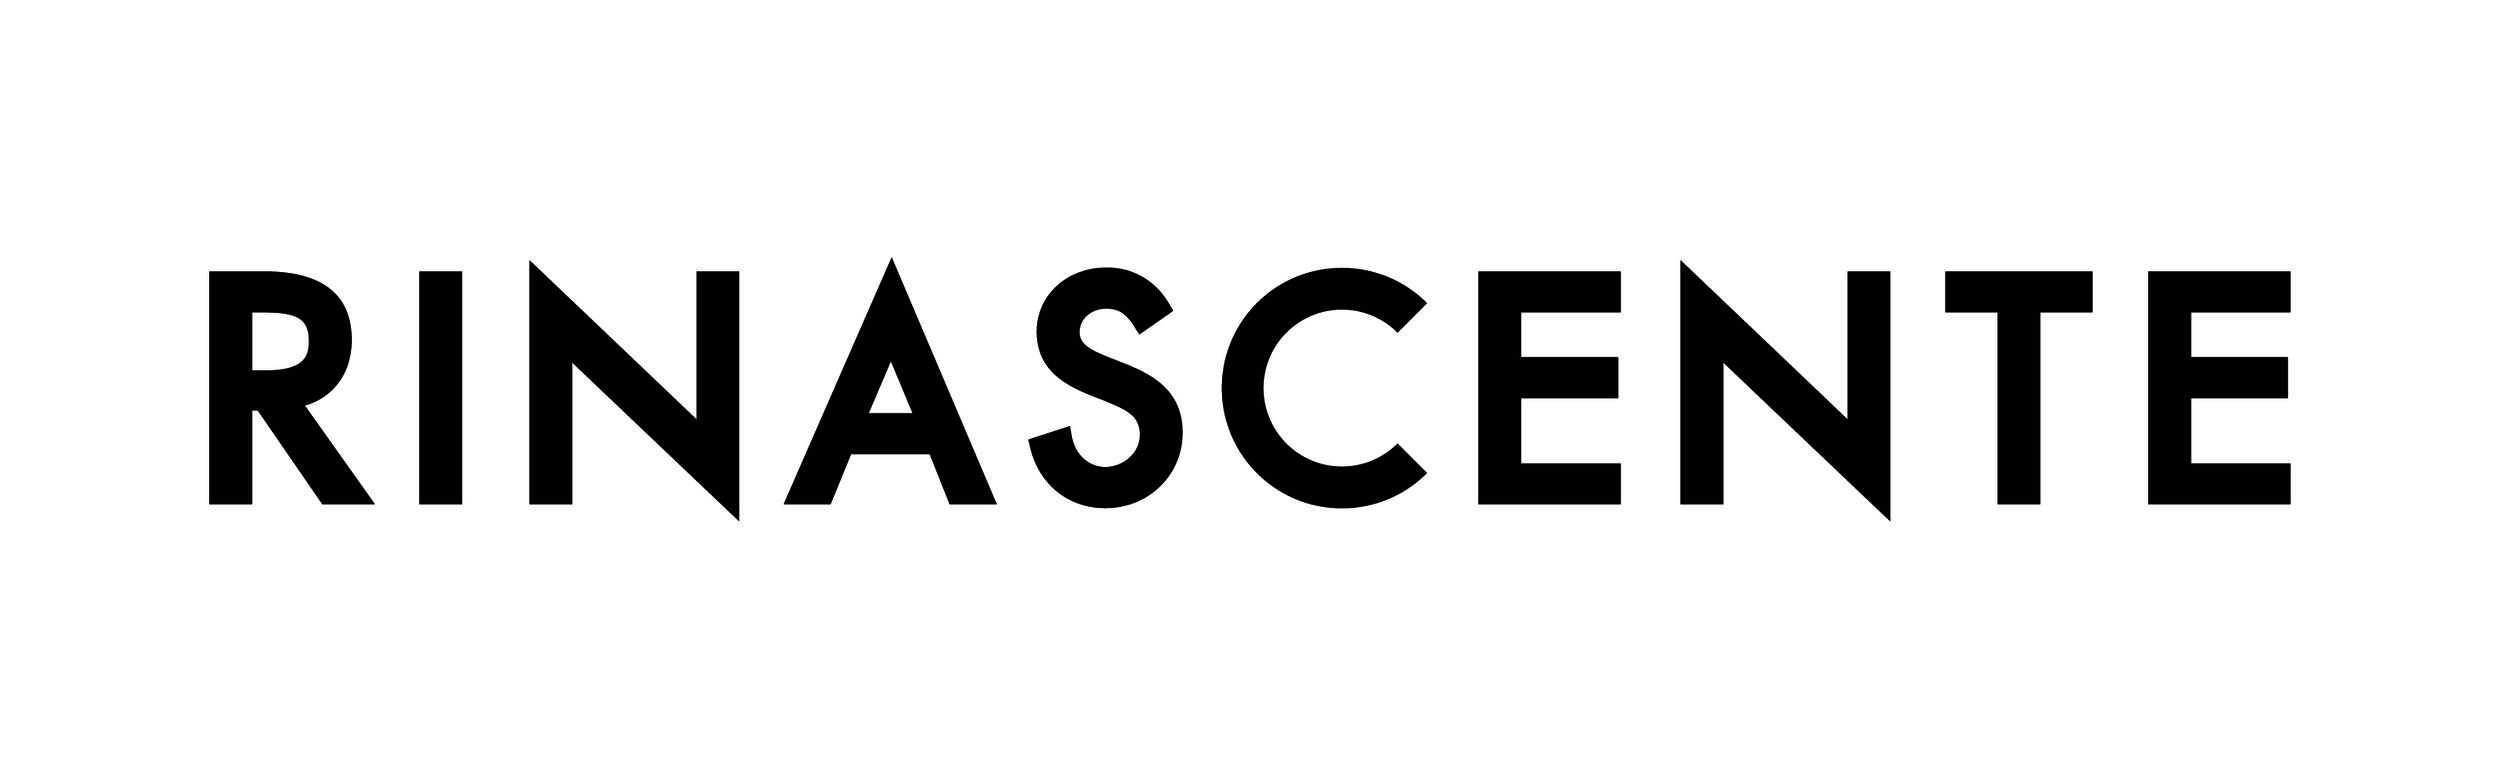 Rinascente_logo_black.jpg